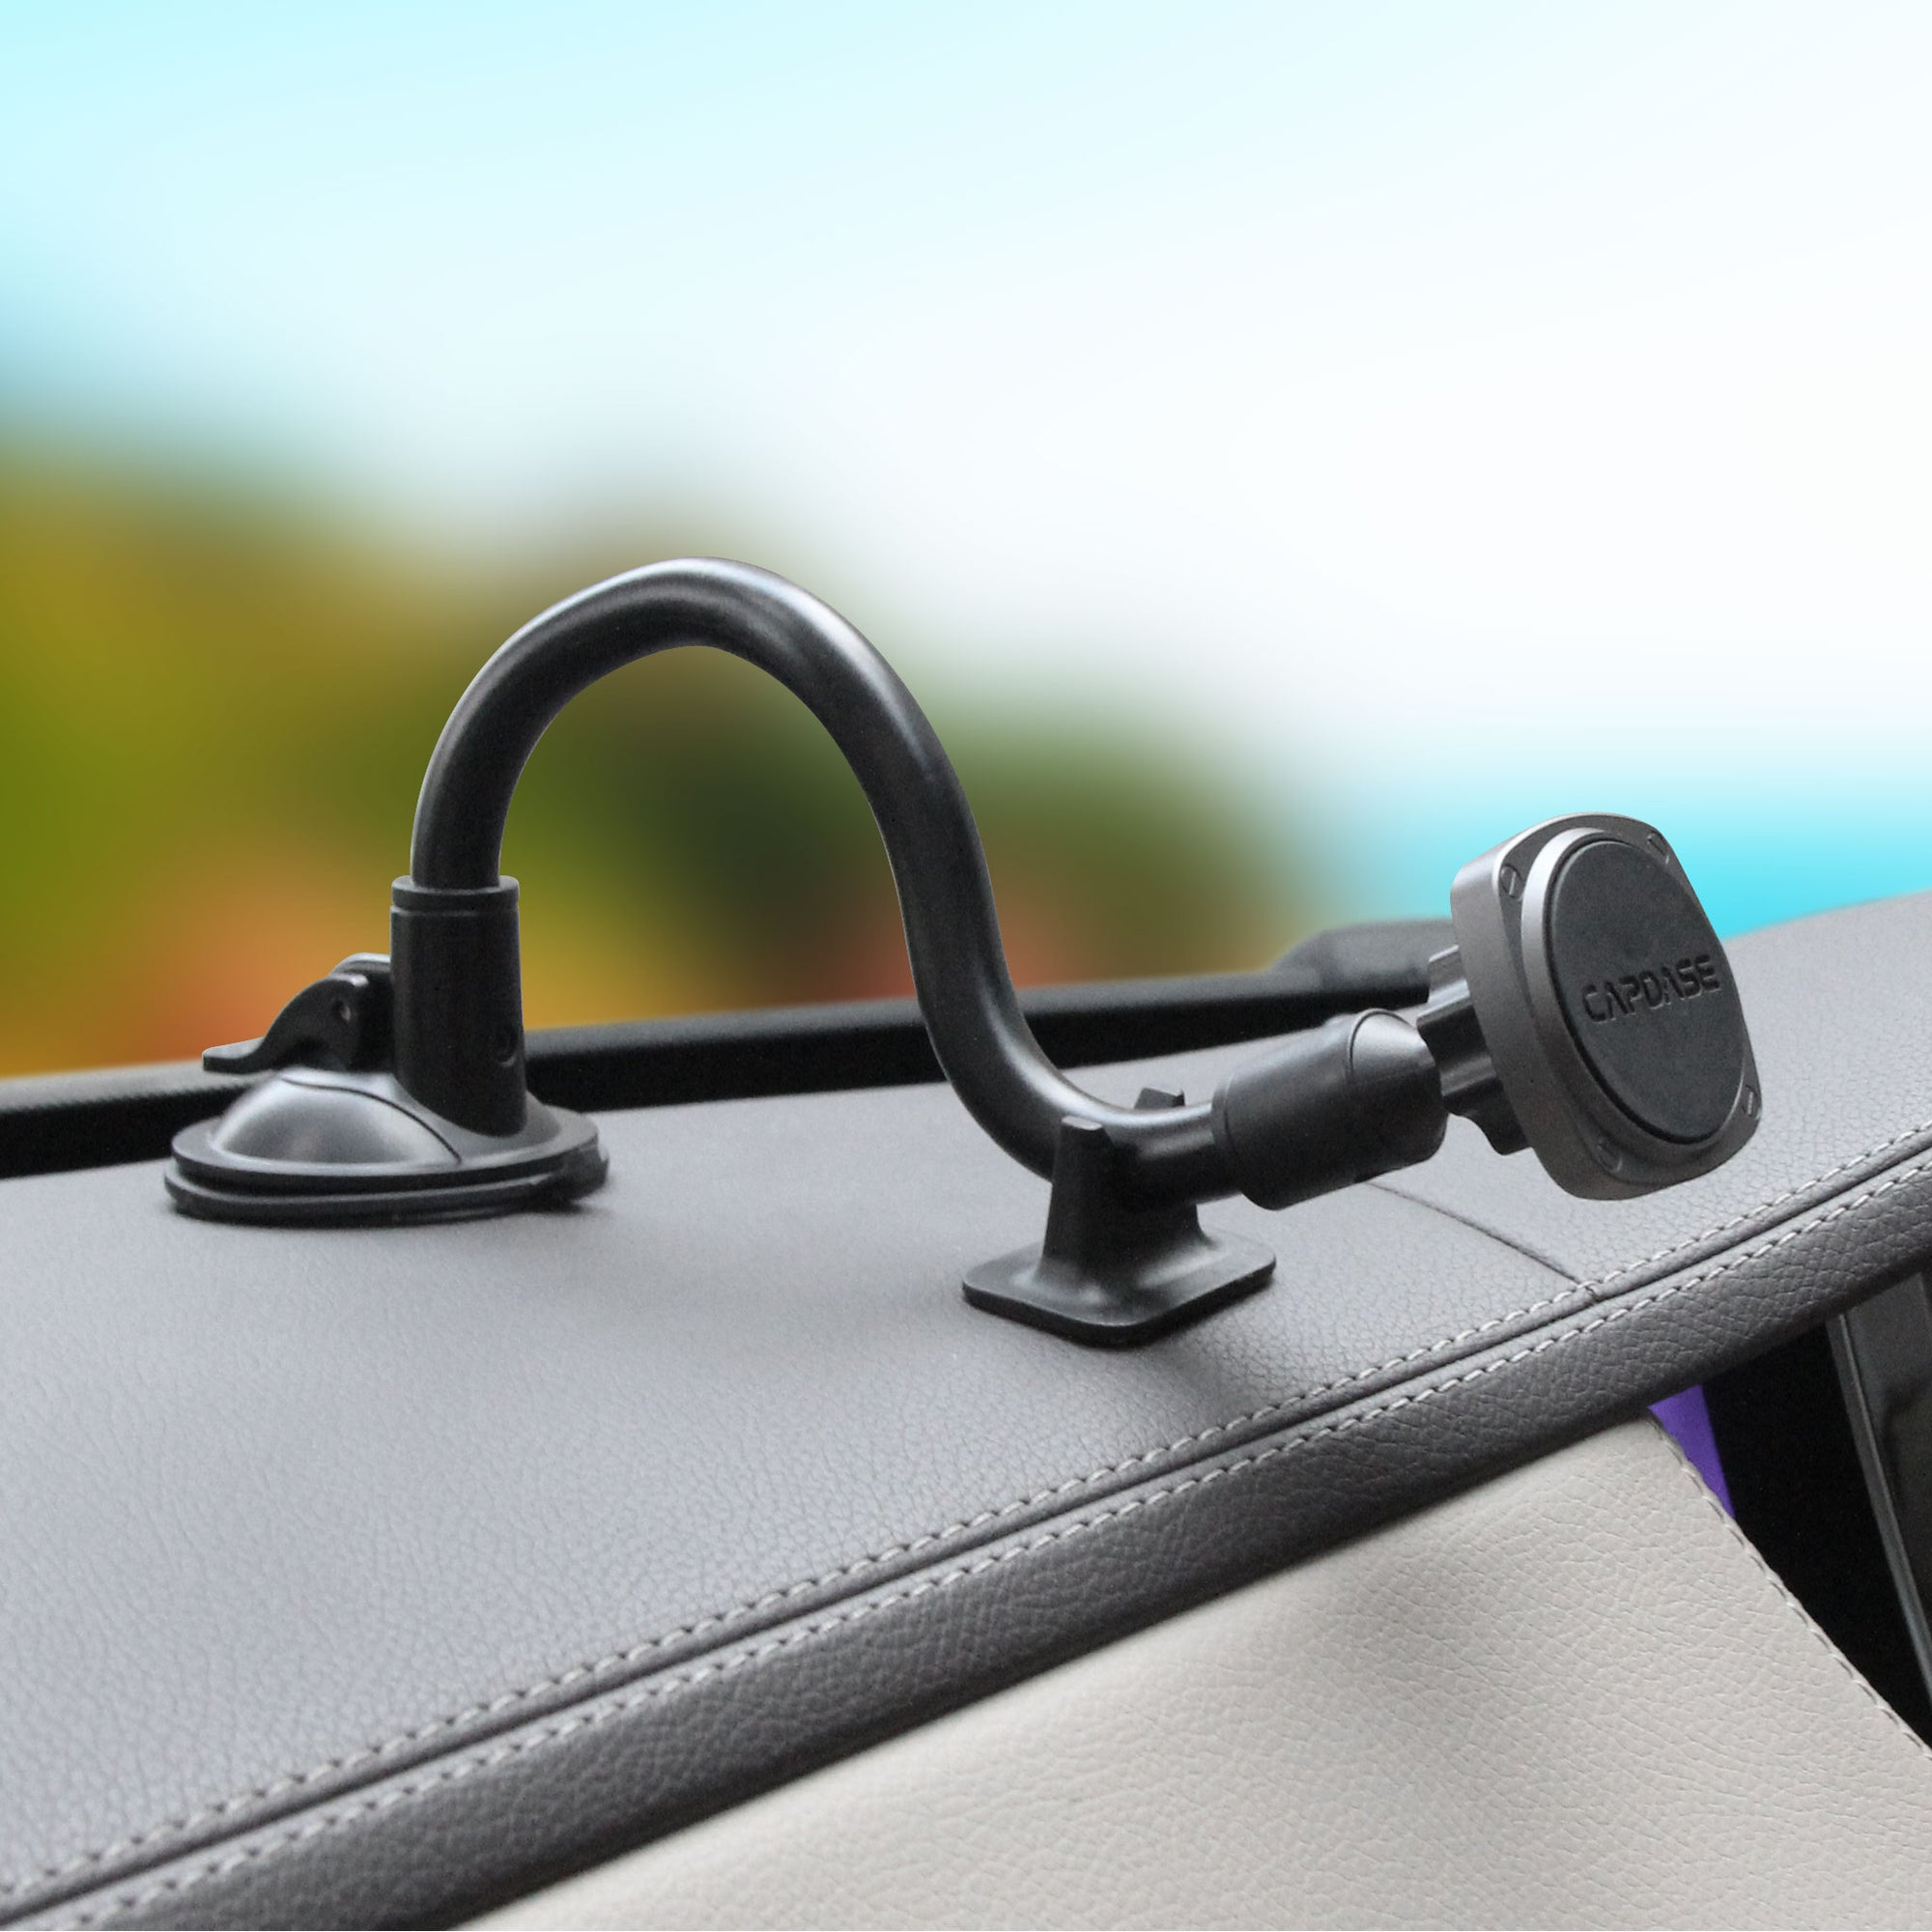 SQUARER Magnetic Car Mount Suction Cup PRO - Gooseneck Arm 300mm